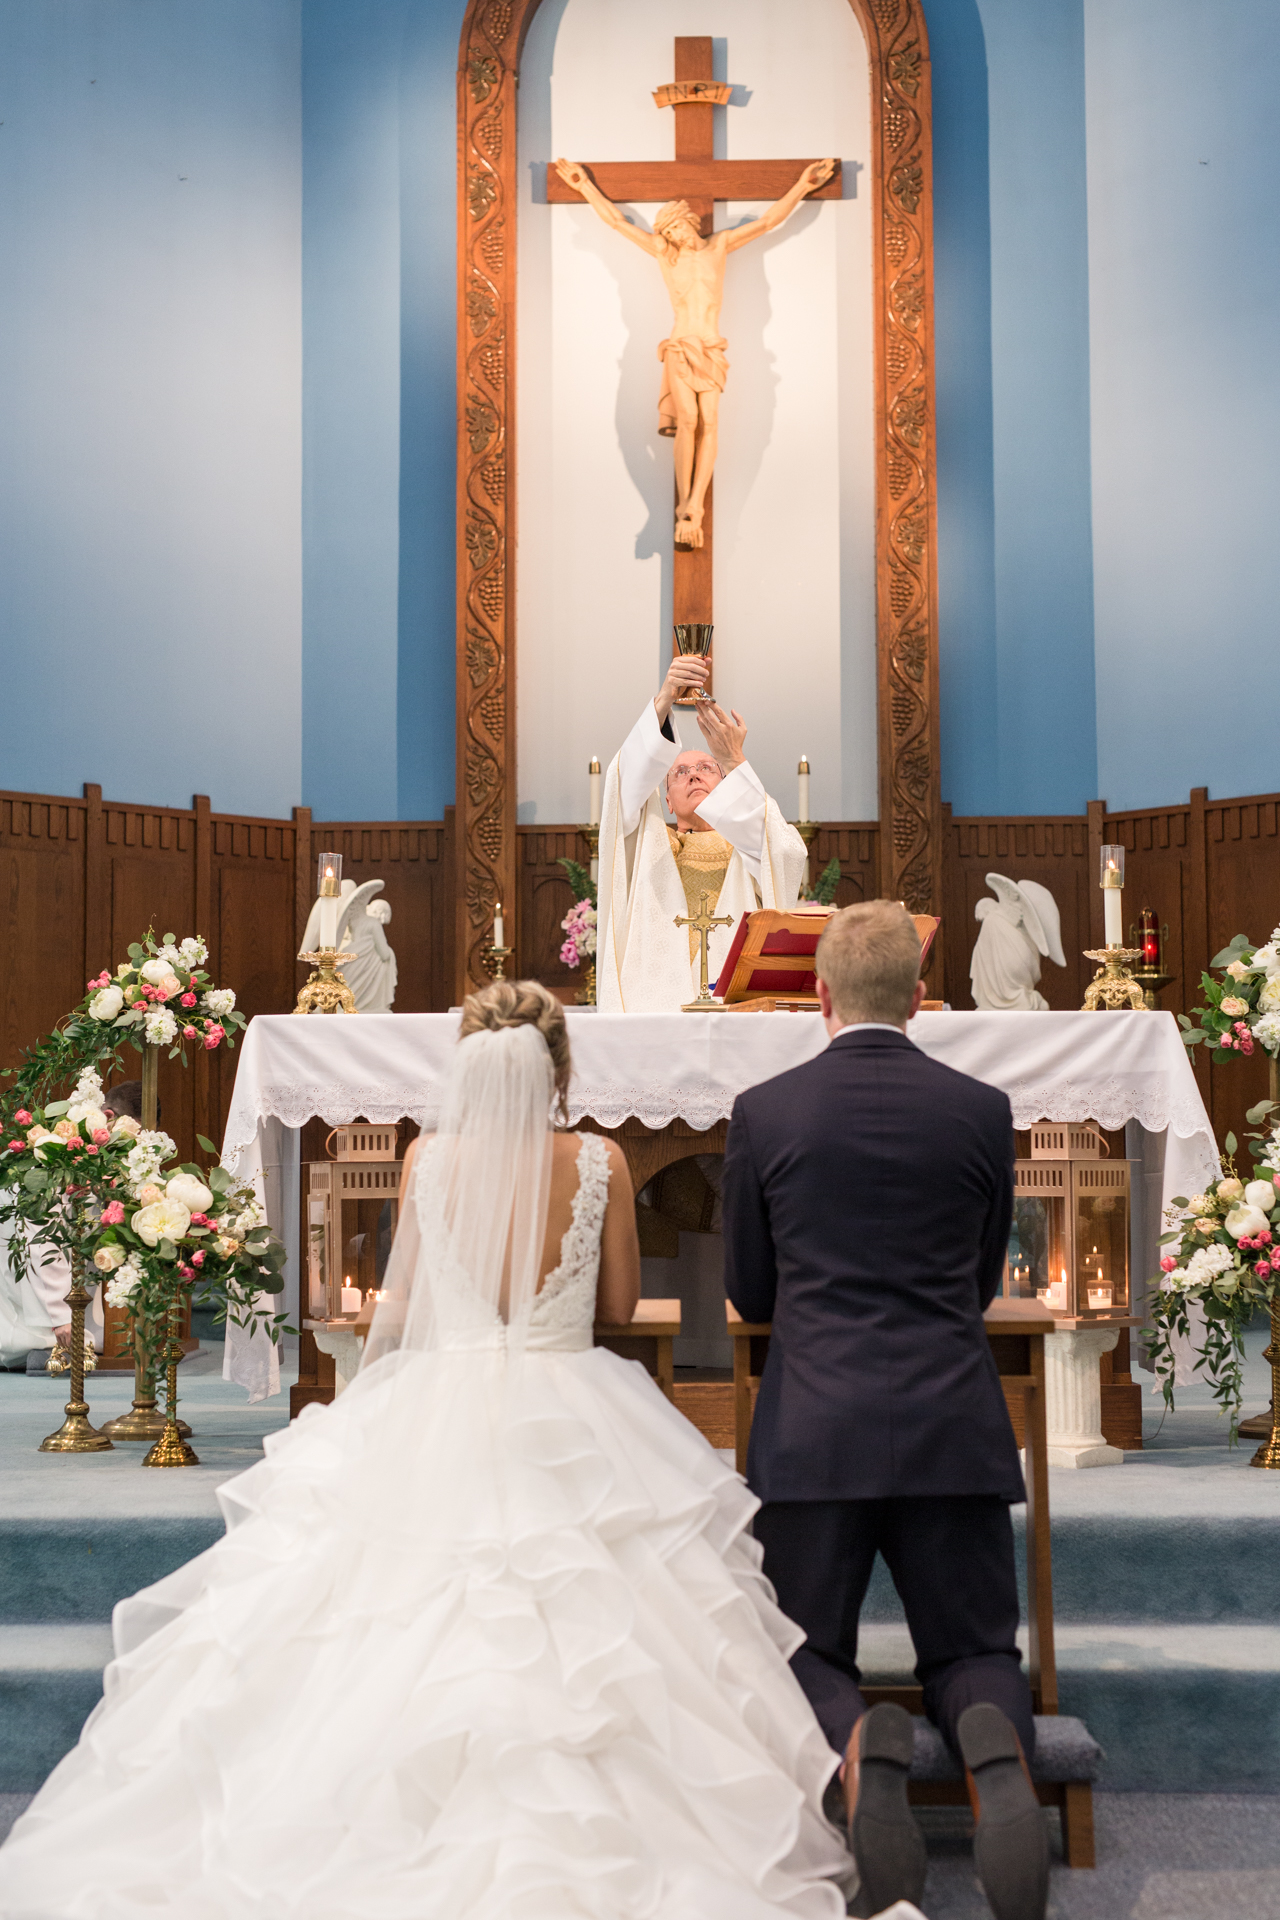 St. Patrick Catholic Church Minonk Packard Plaza Peoria Bloomington Normal Illinois Wedding Photographer Photographers Peoria Riverfront-22.jpg